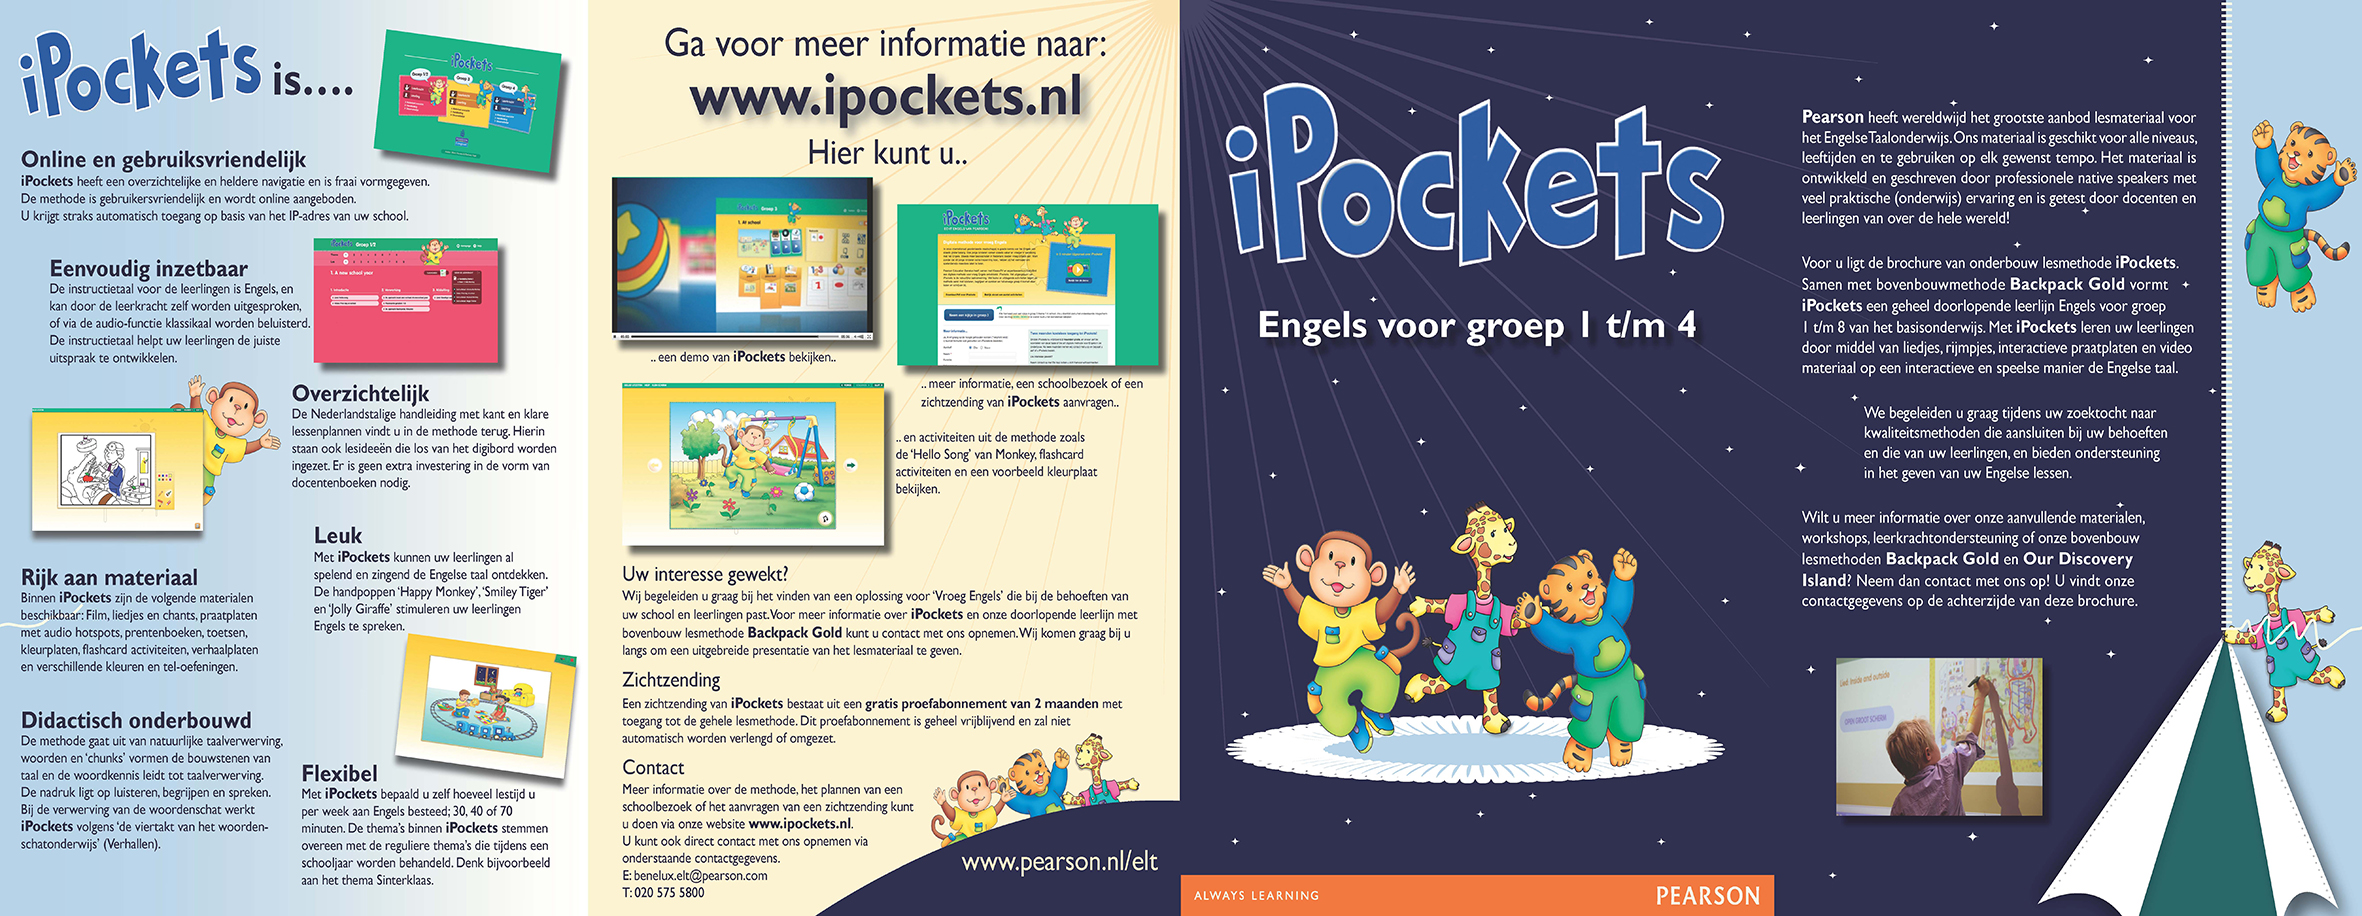 Pearson iPockets